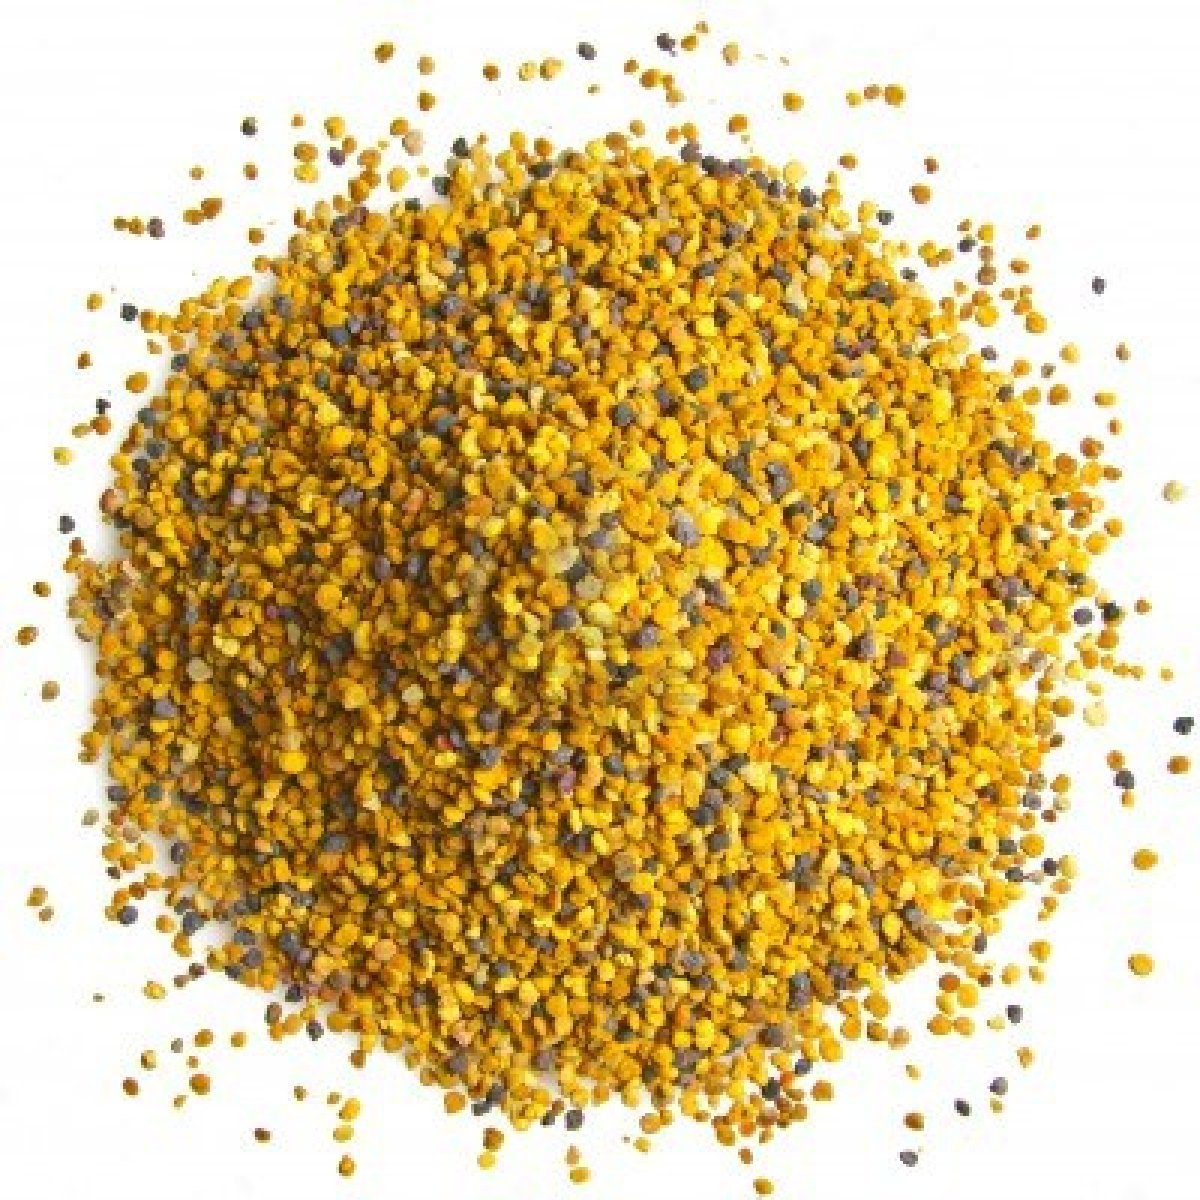 10875322 bee pollen on a white background